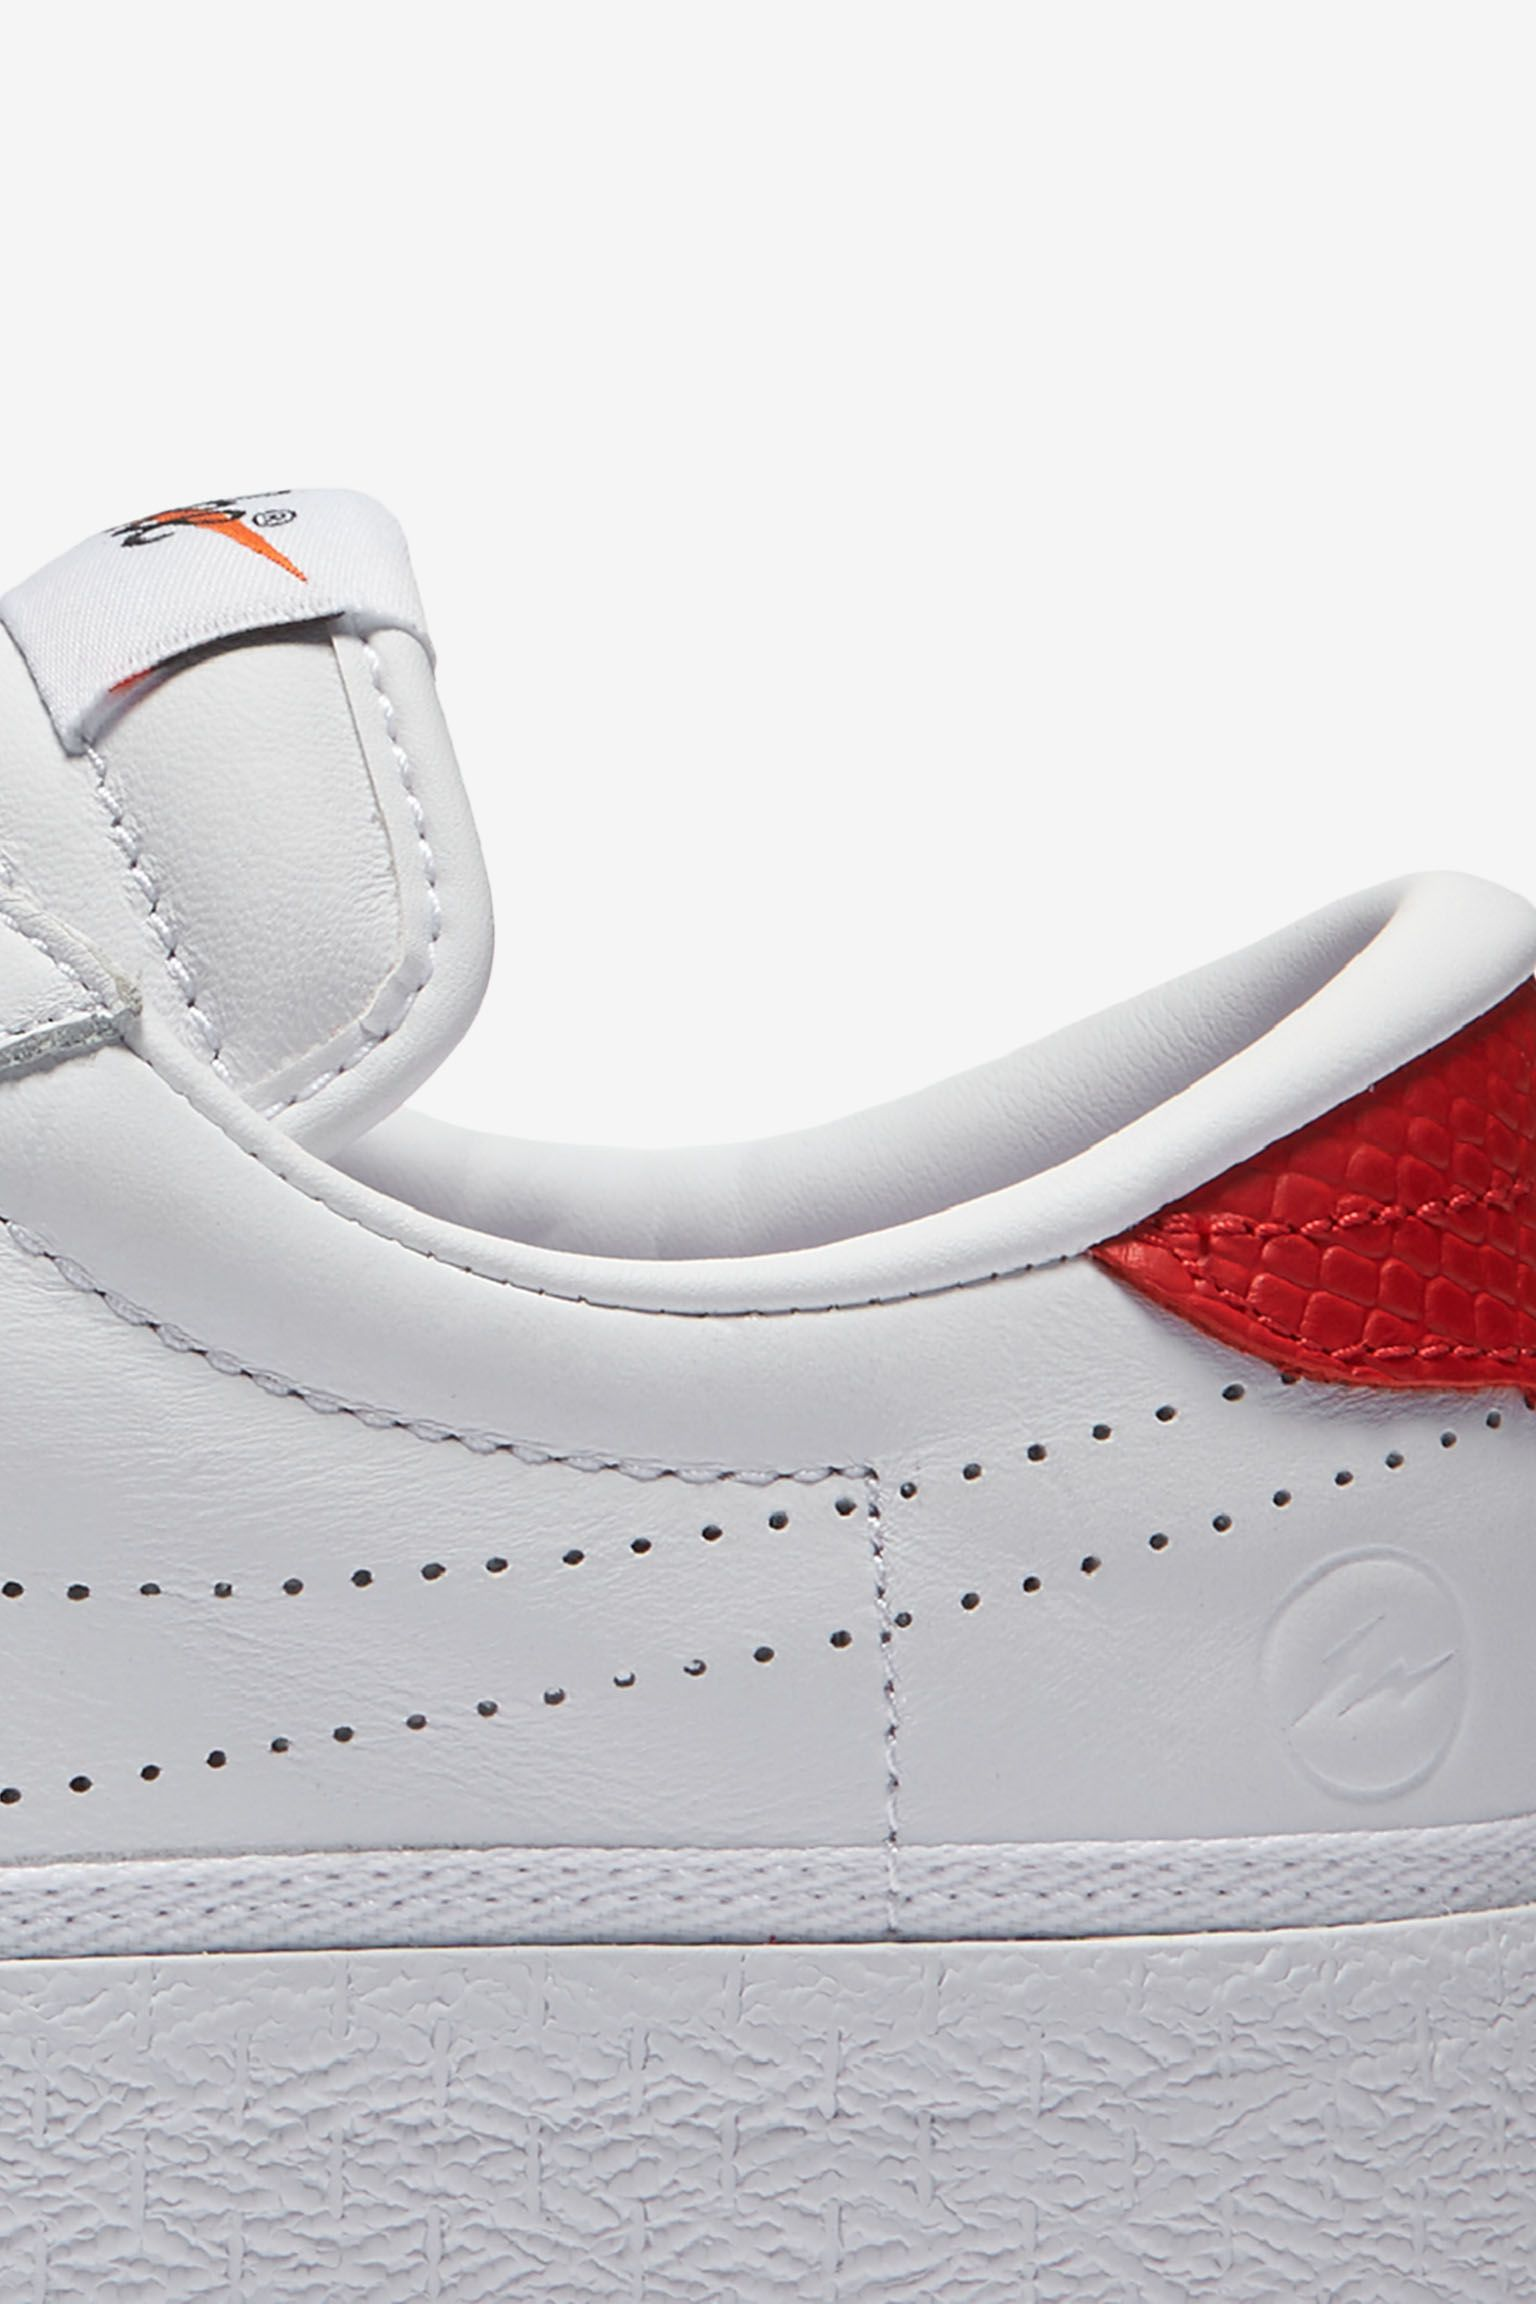 Women's NikeLab x Fragment Zoom Tennis Classic 'White & University Red'